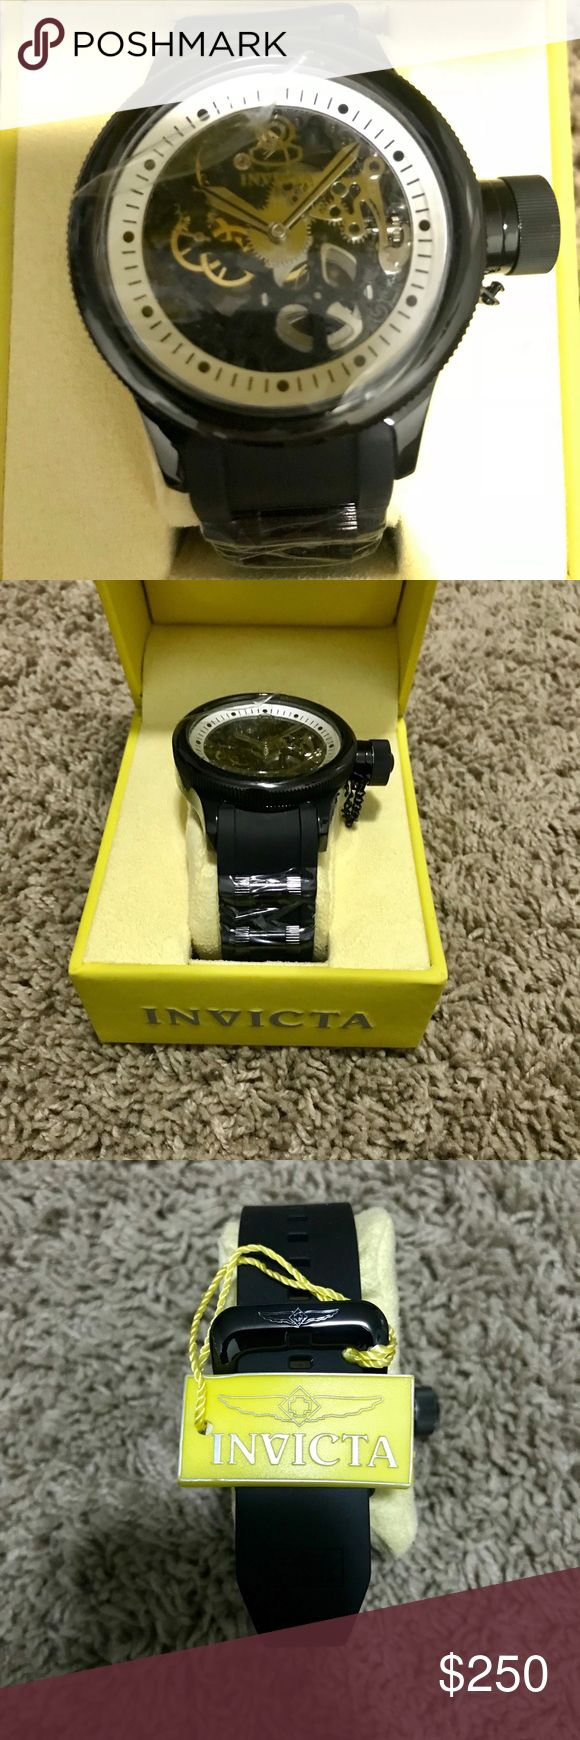 Invicta Black Rubber Men's Watch Brand New Never Been Worn! Low price for this authentic Invicta Watch new with tags, plastic screen still in face. Black rubber band and see through face Invicta Accessories Watches